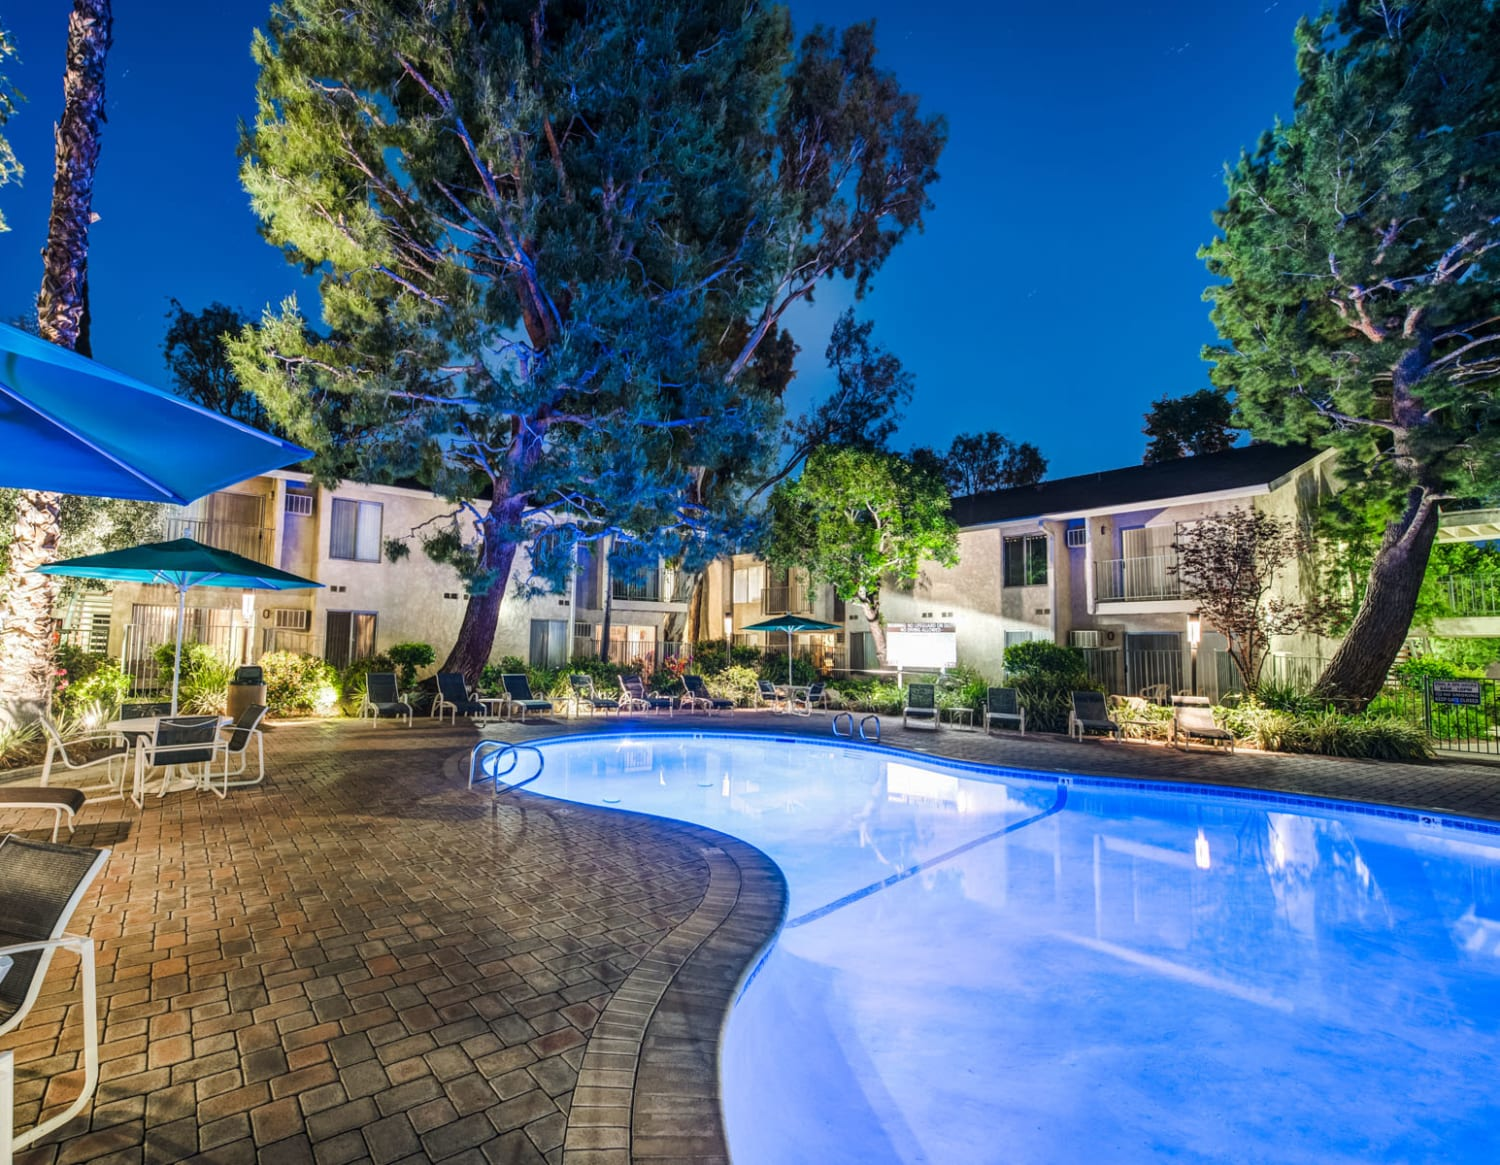 Swimming pool area lit up at night at Village Pointe in Northridge, California